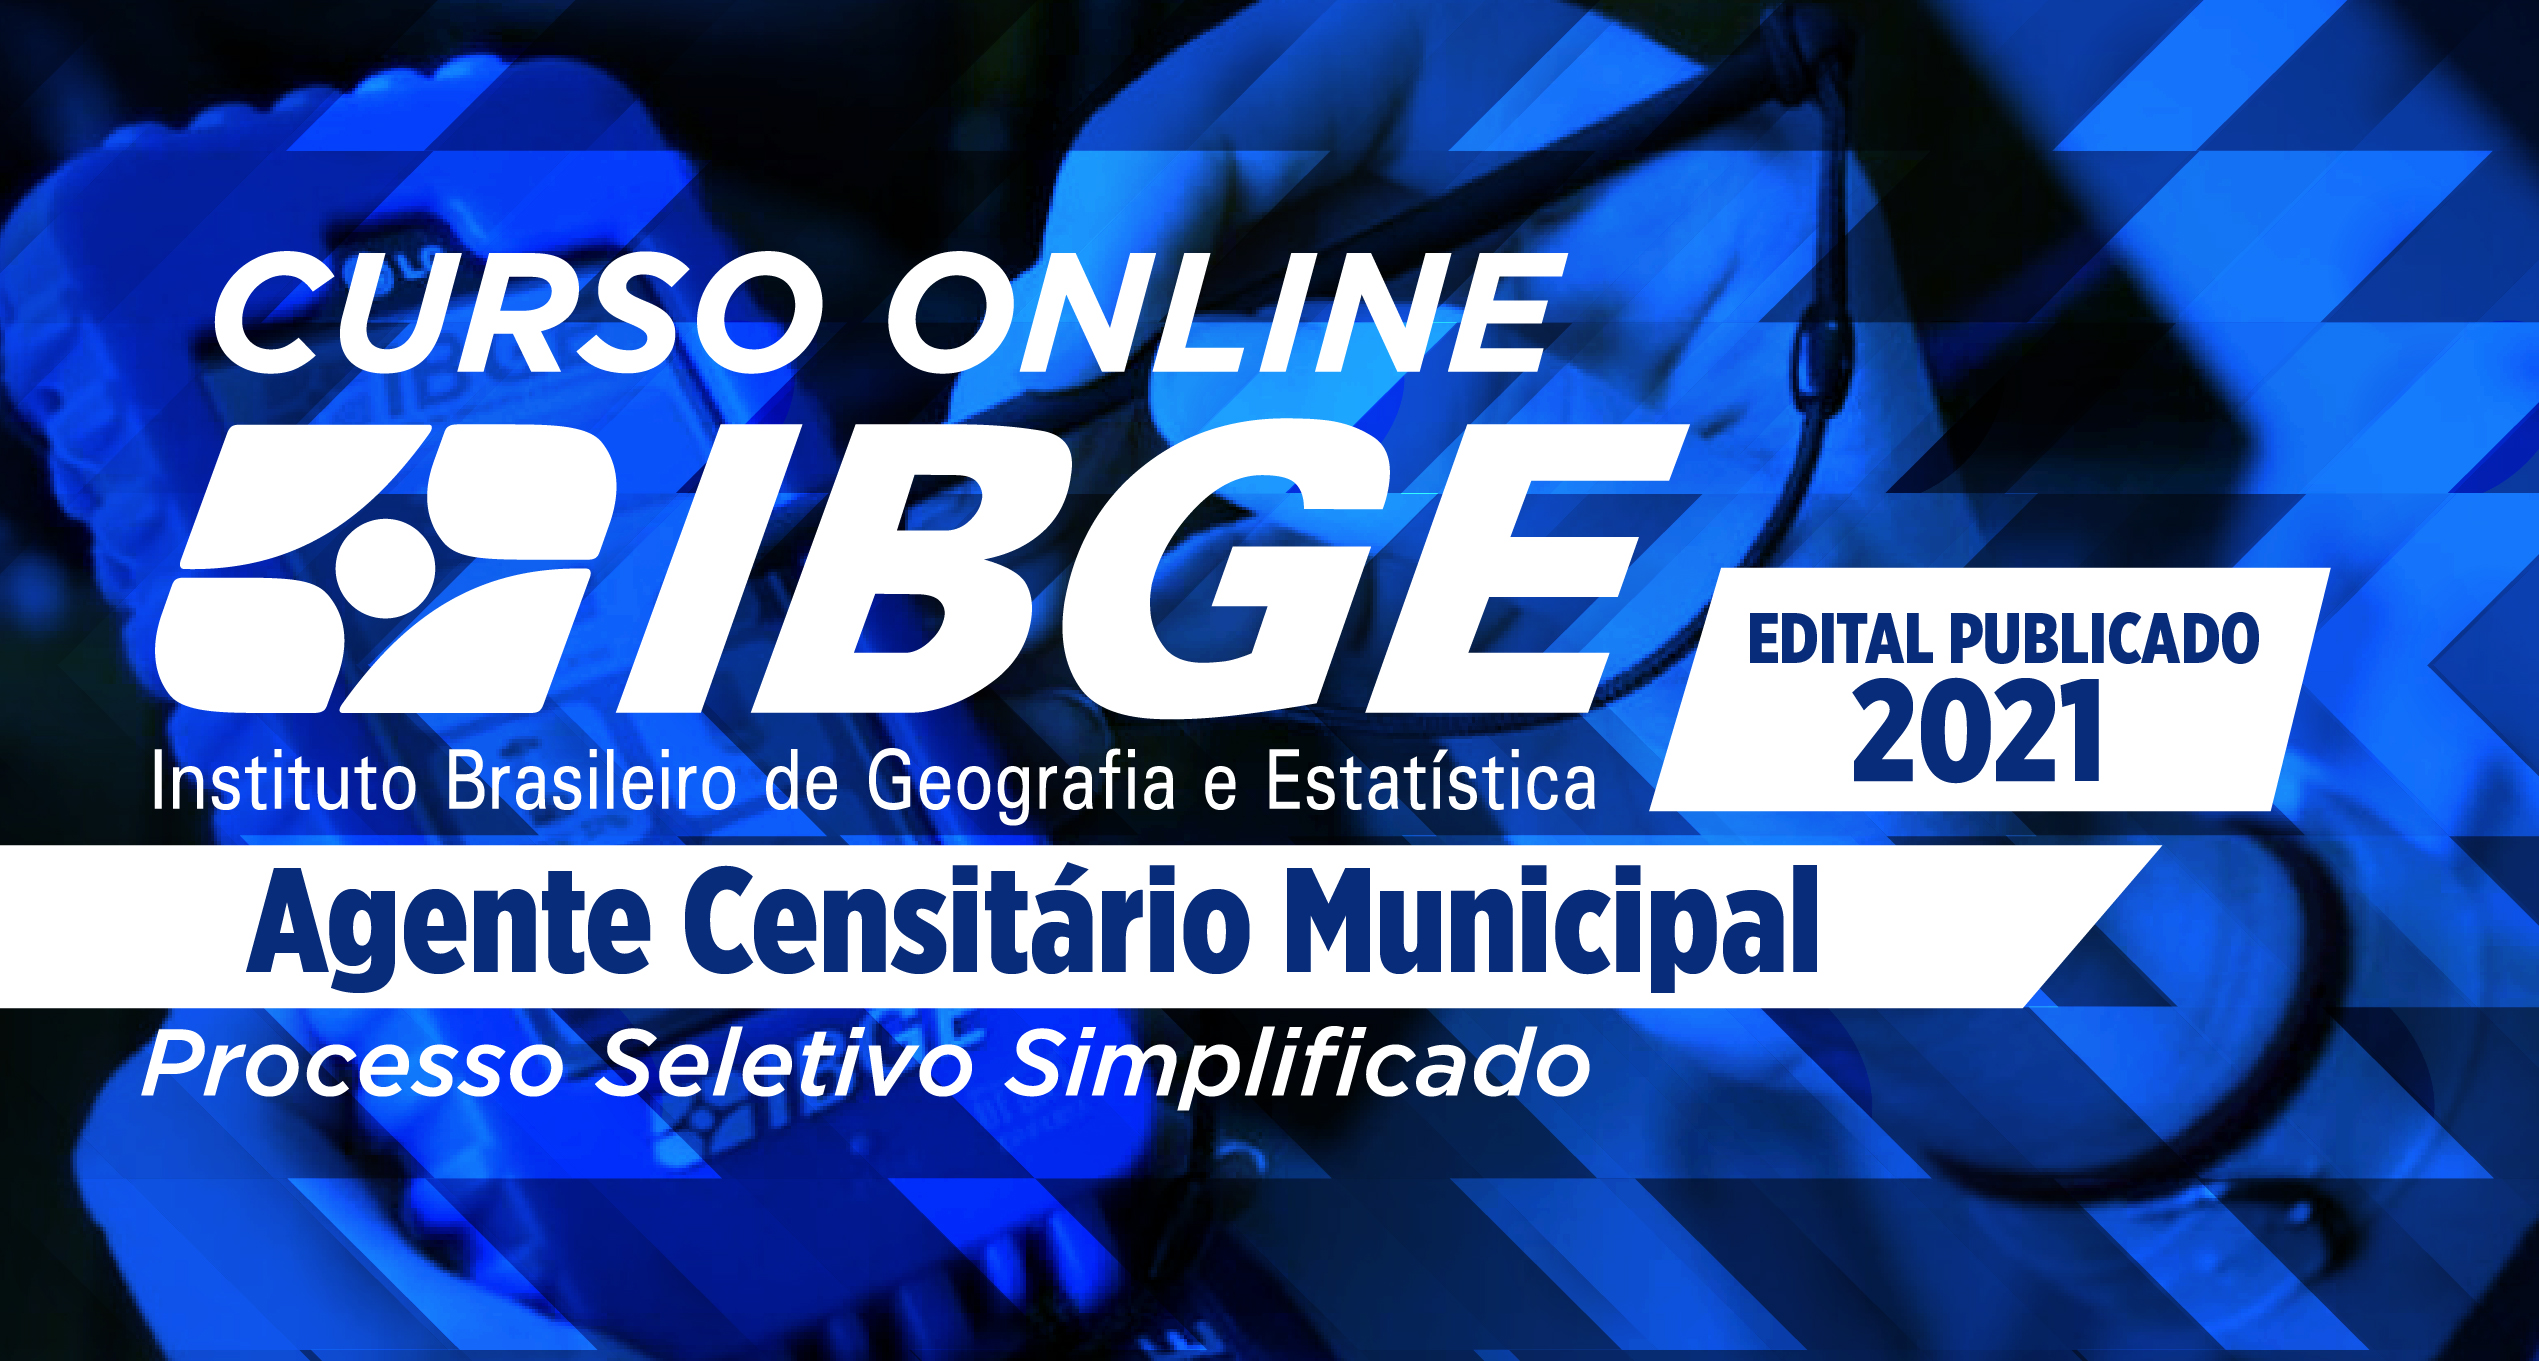 IBGE - Agente Censitário Municipal